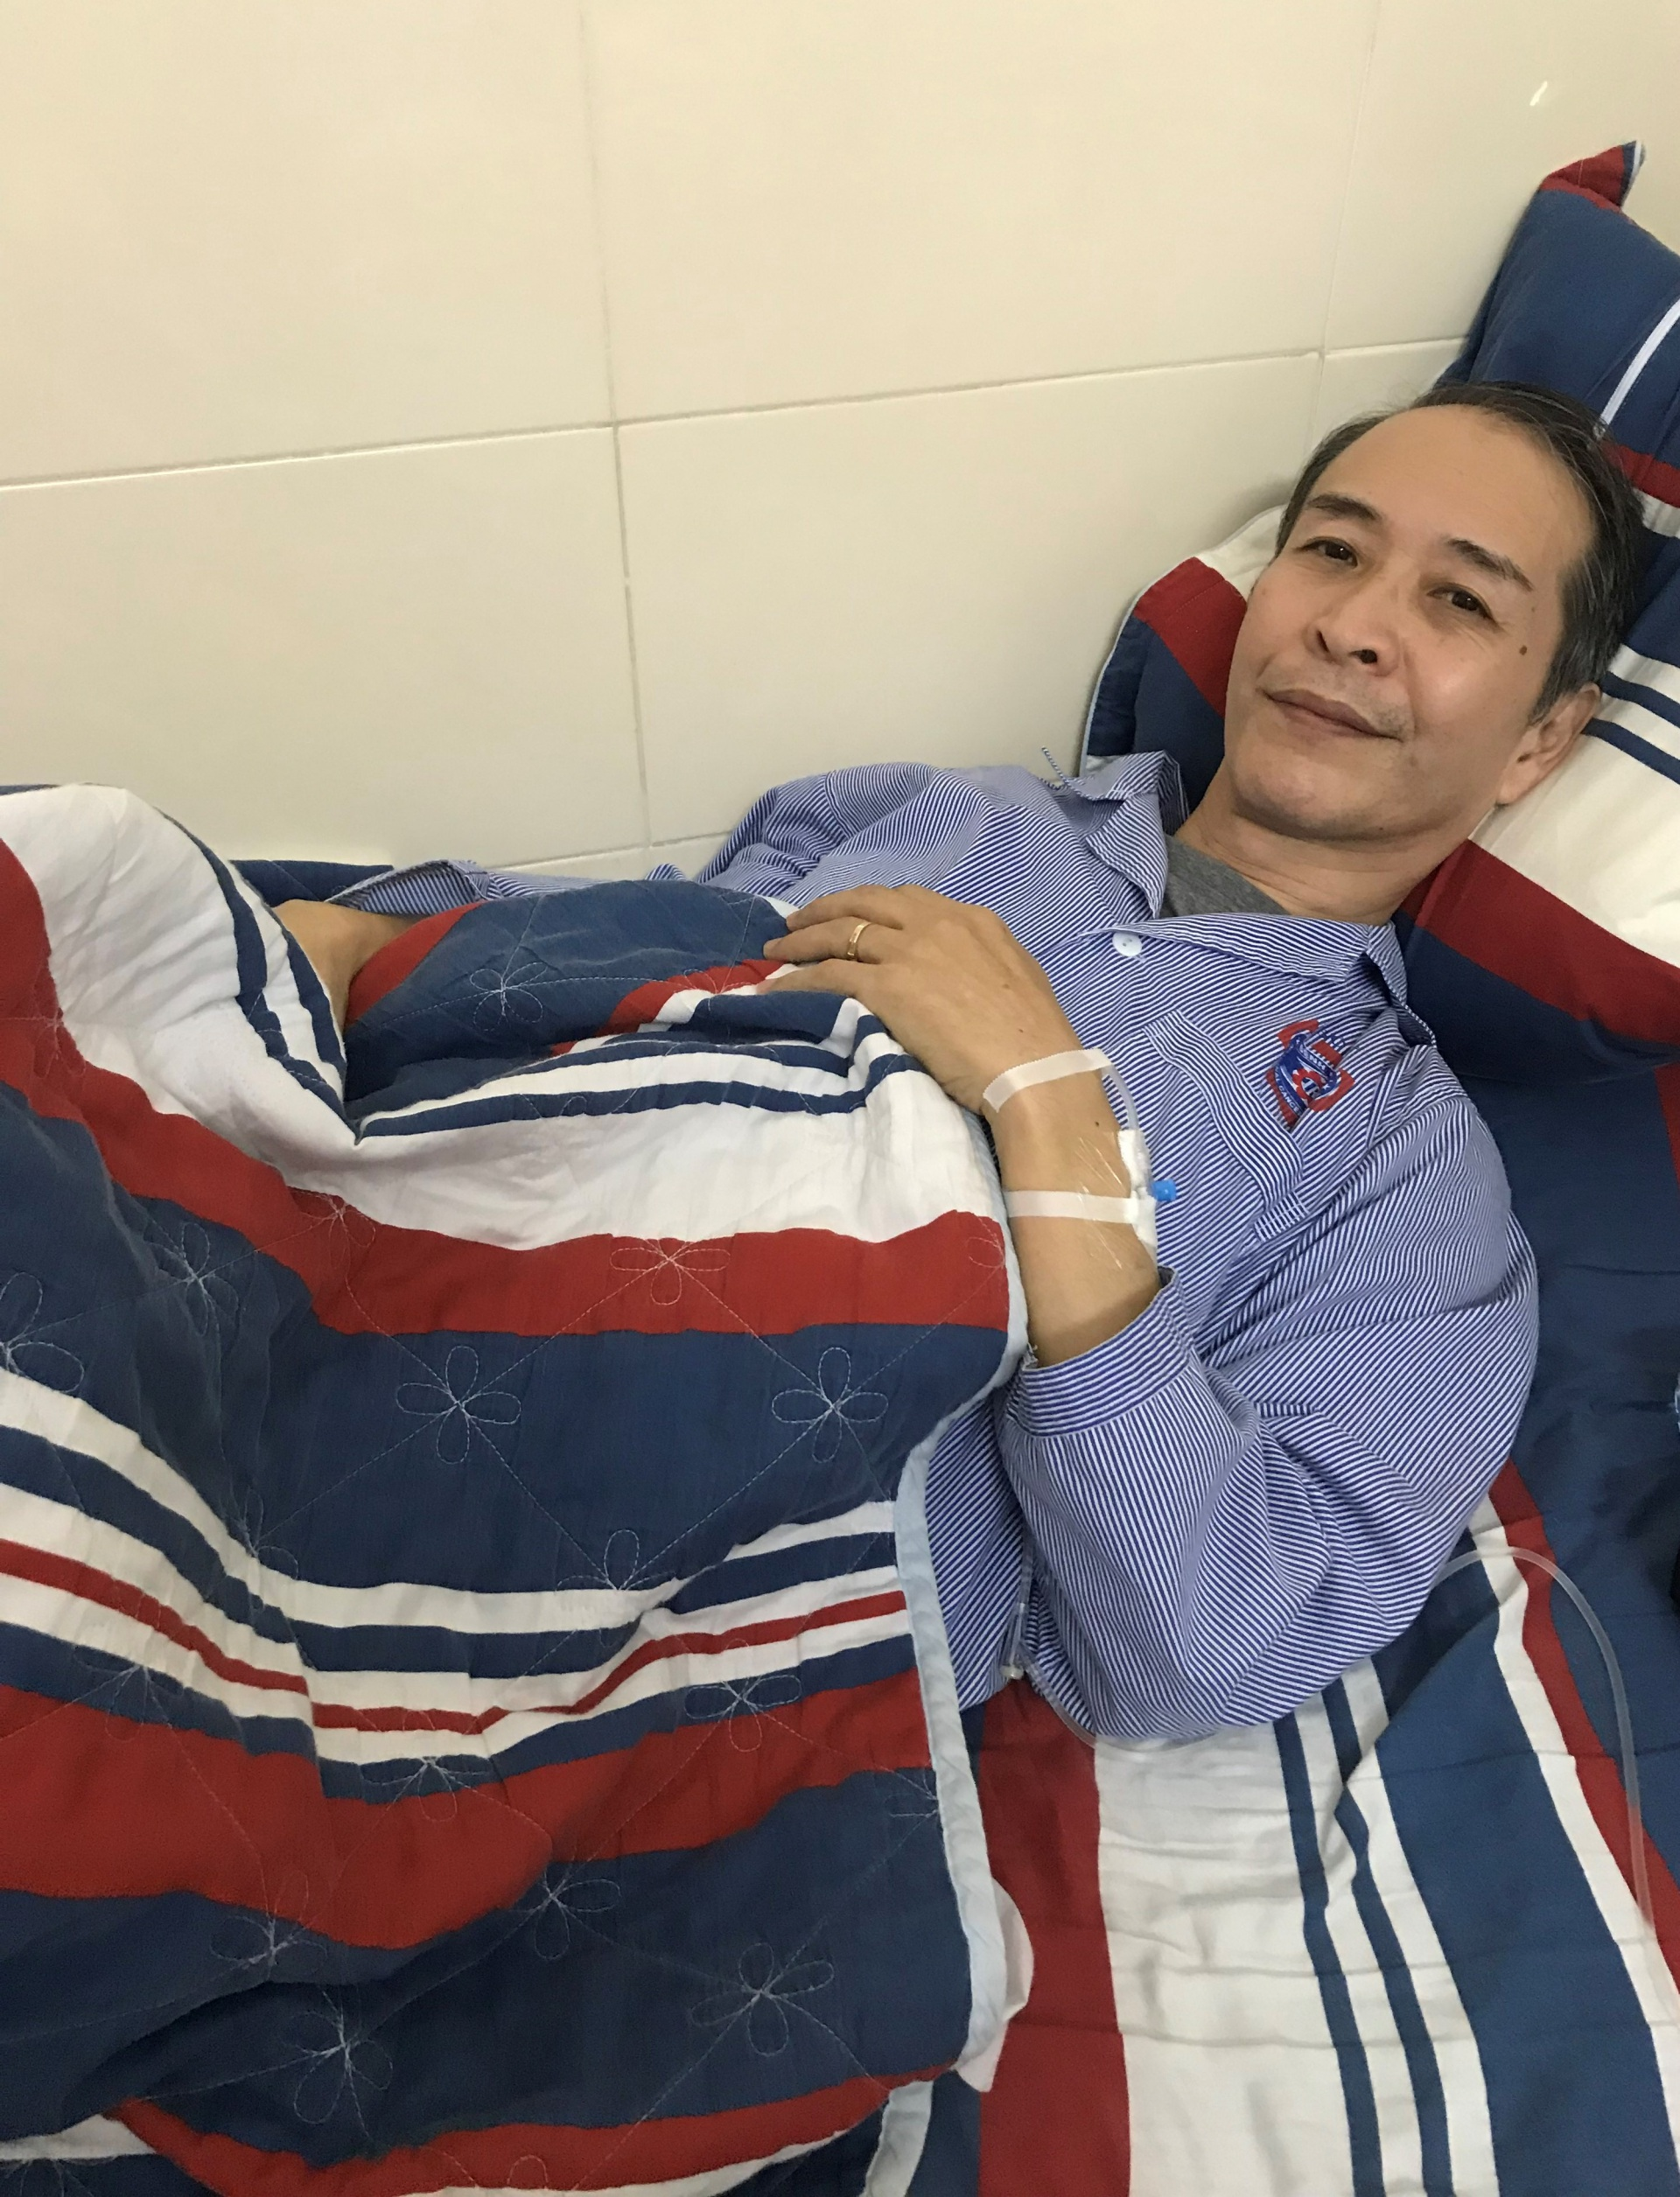 Japanese engineer chooses to undergo cancer surgery in Vietnam despite insurance coverage at home